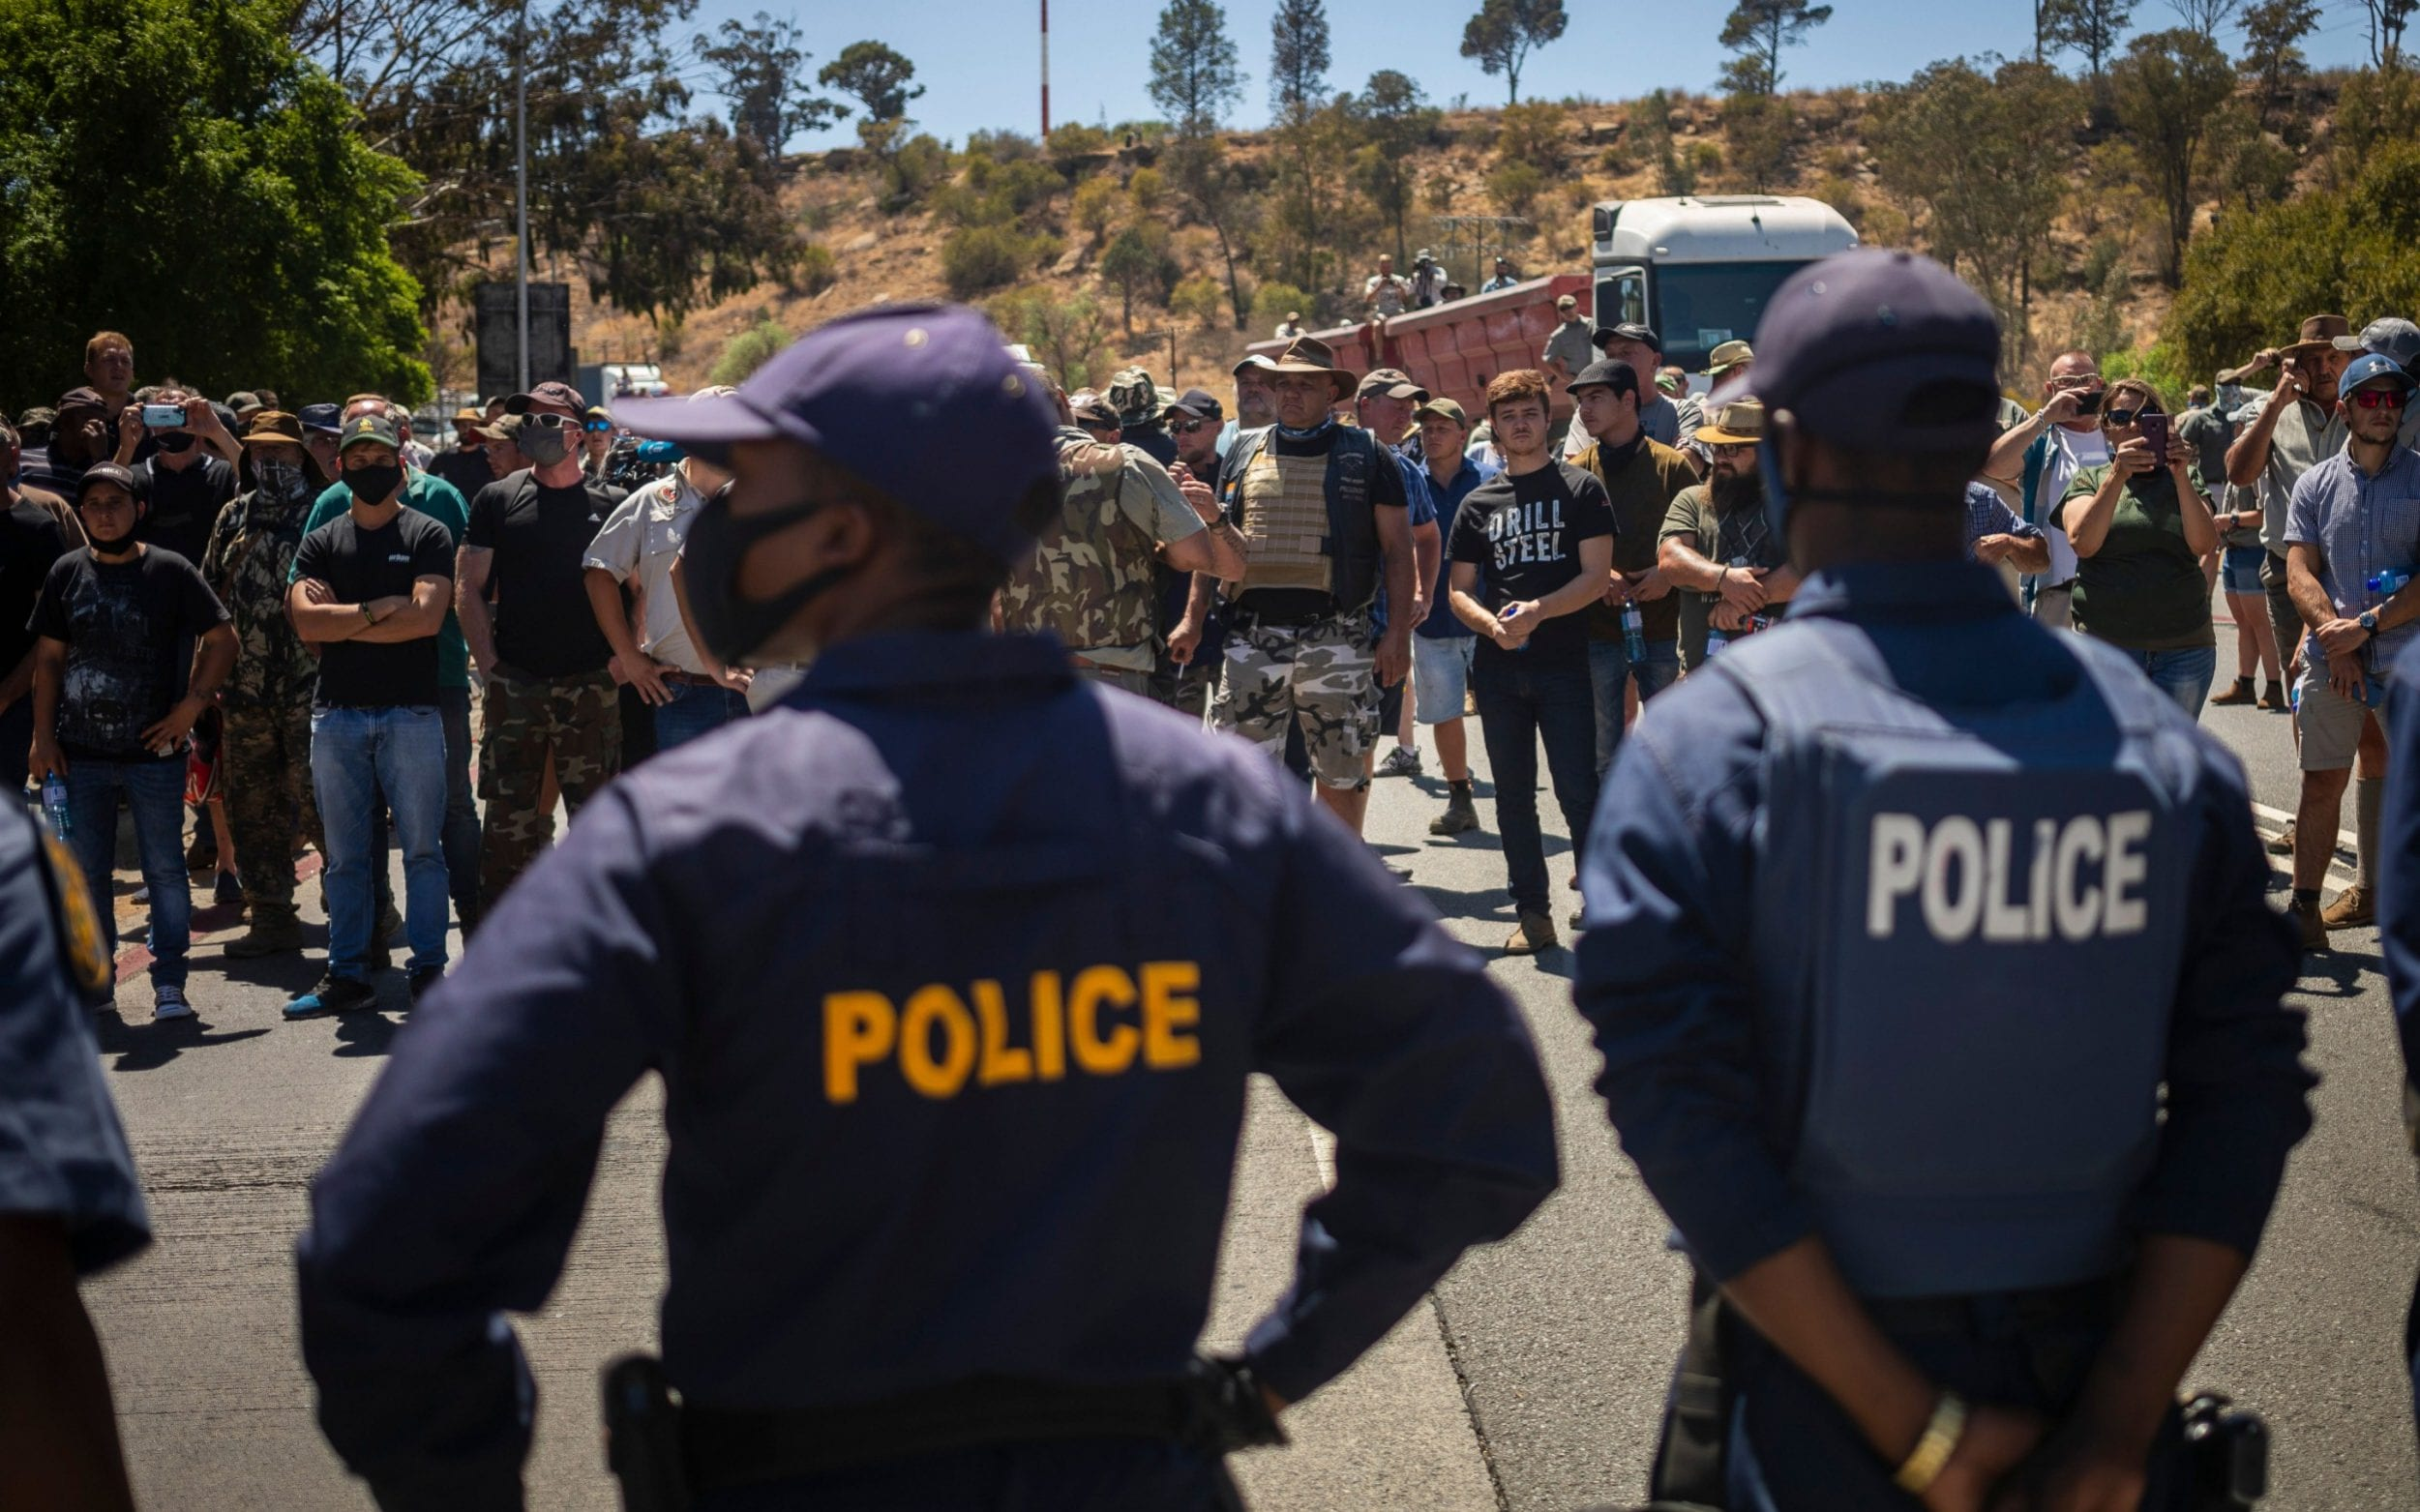 South African white farmers and rival black protesters face off outside court hearing over farm murder case